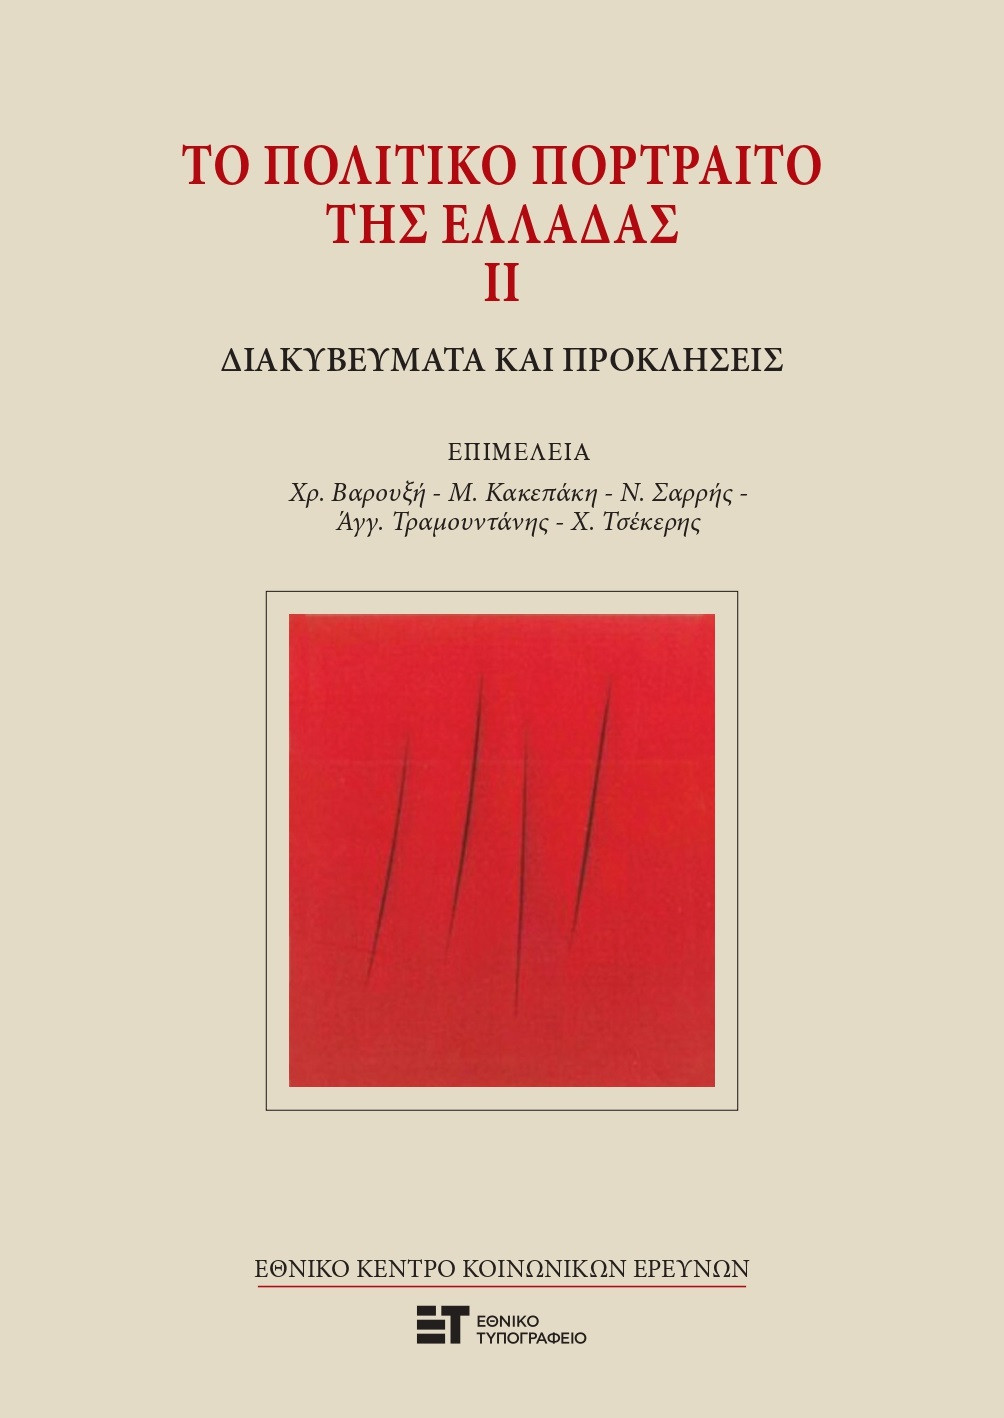 From reception to integration: migrant populations in Greece during and in the aftermath of the crisis